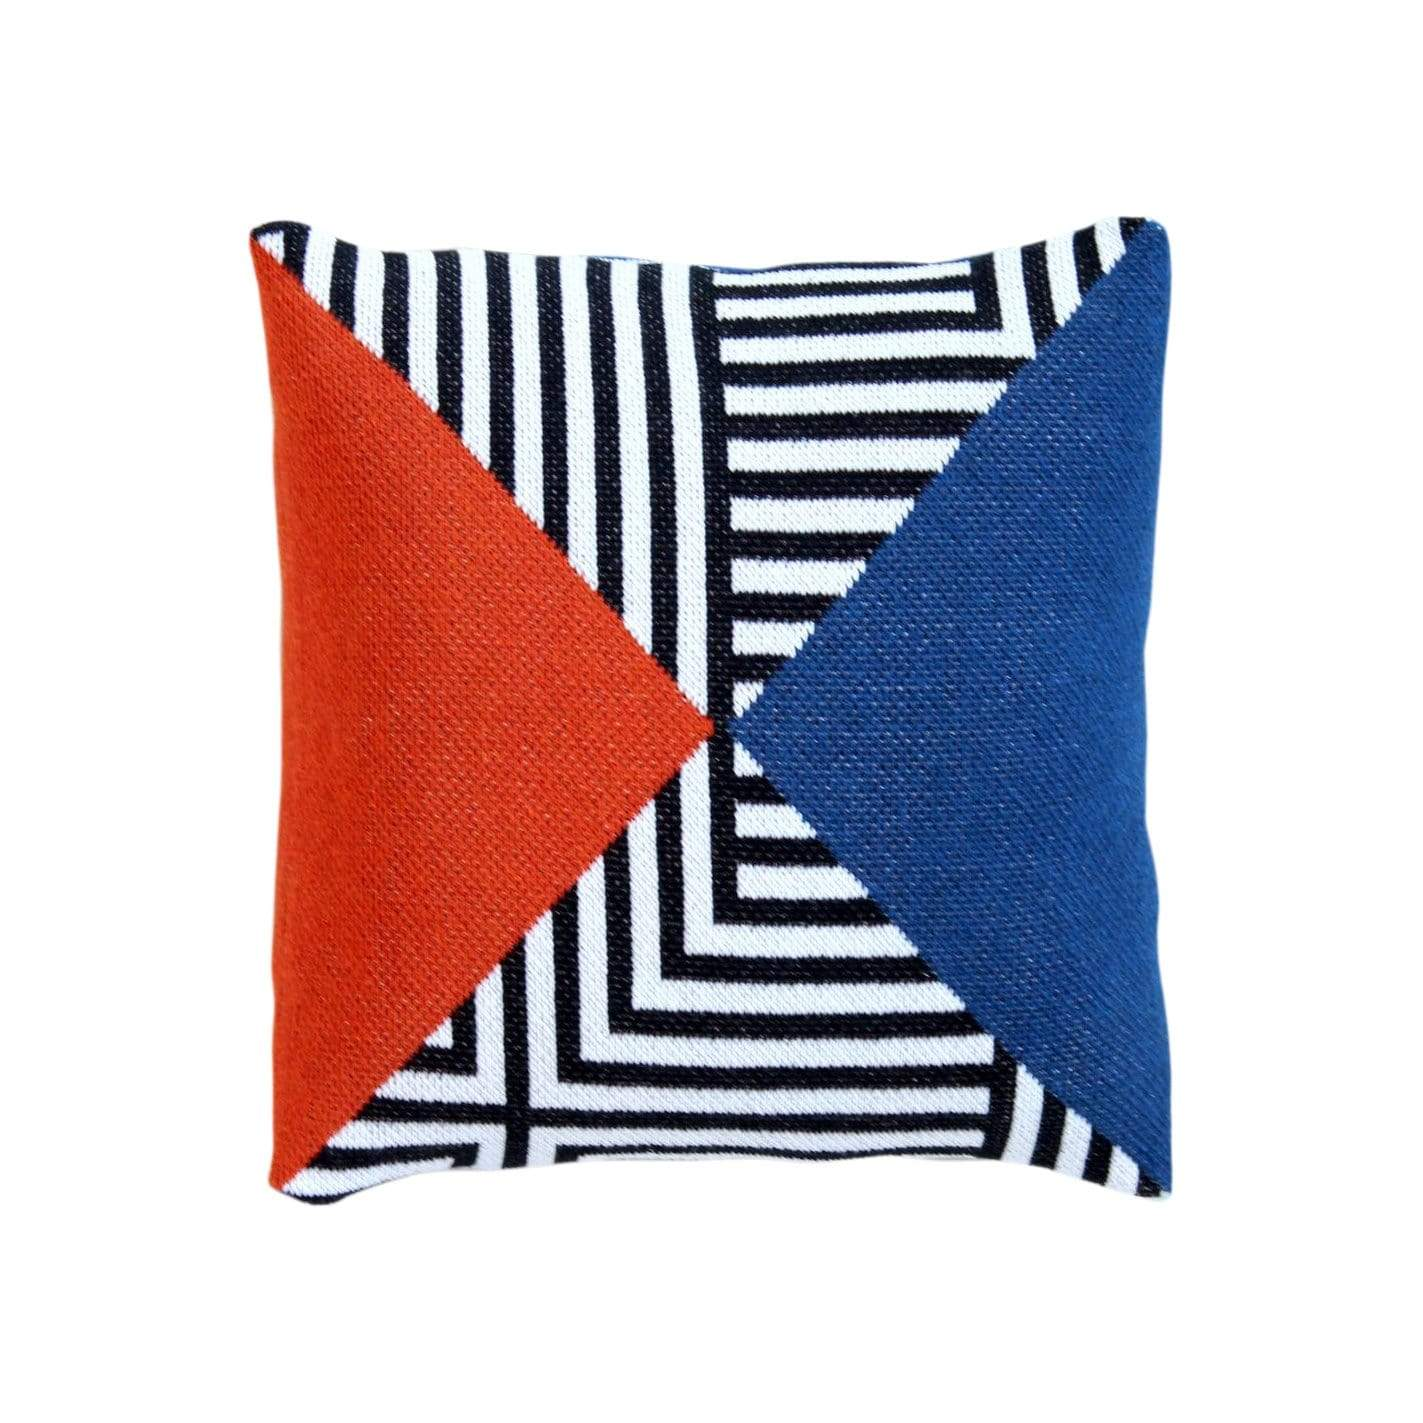 DittoHouse Cushions + Throws Traverse Pillow Cover